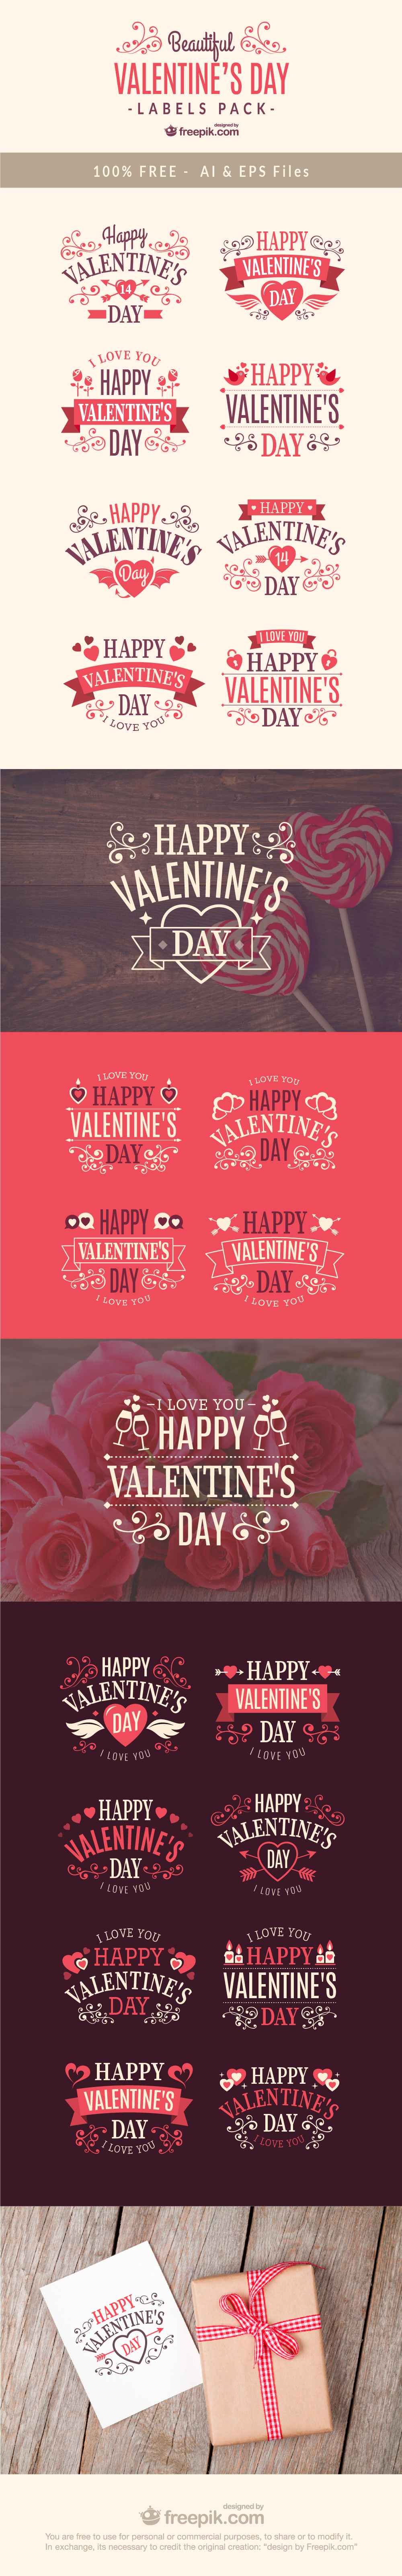 Free Valentines Day Label Designs  Free Typographic Design And Fonts